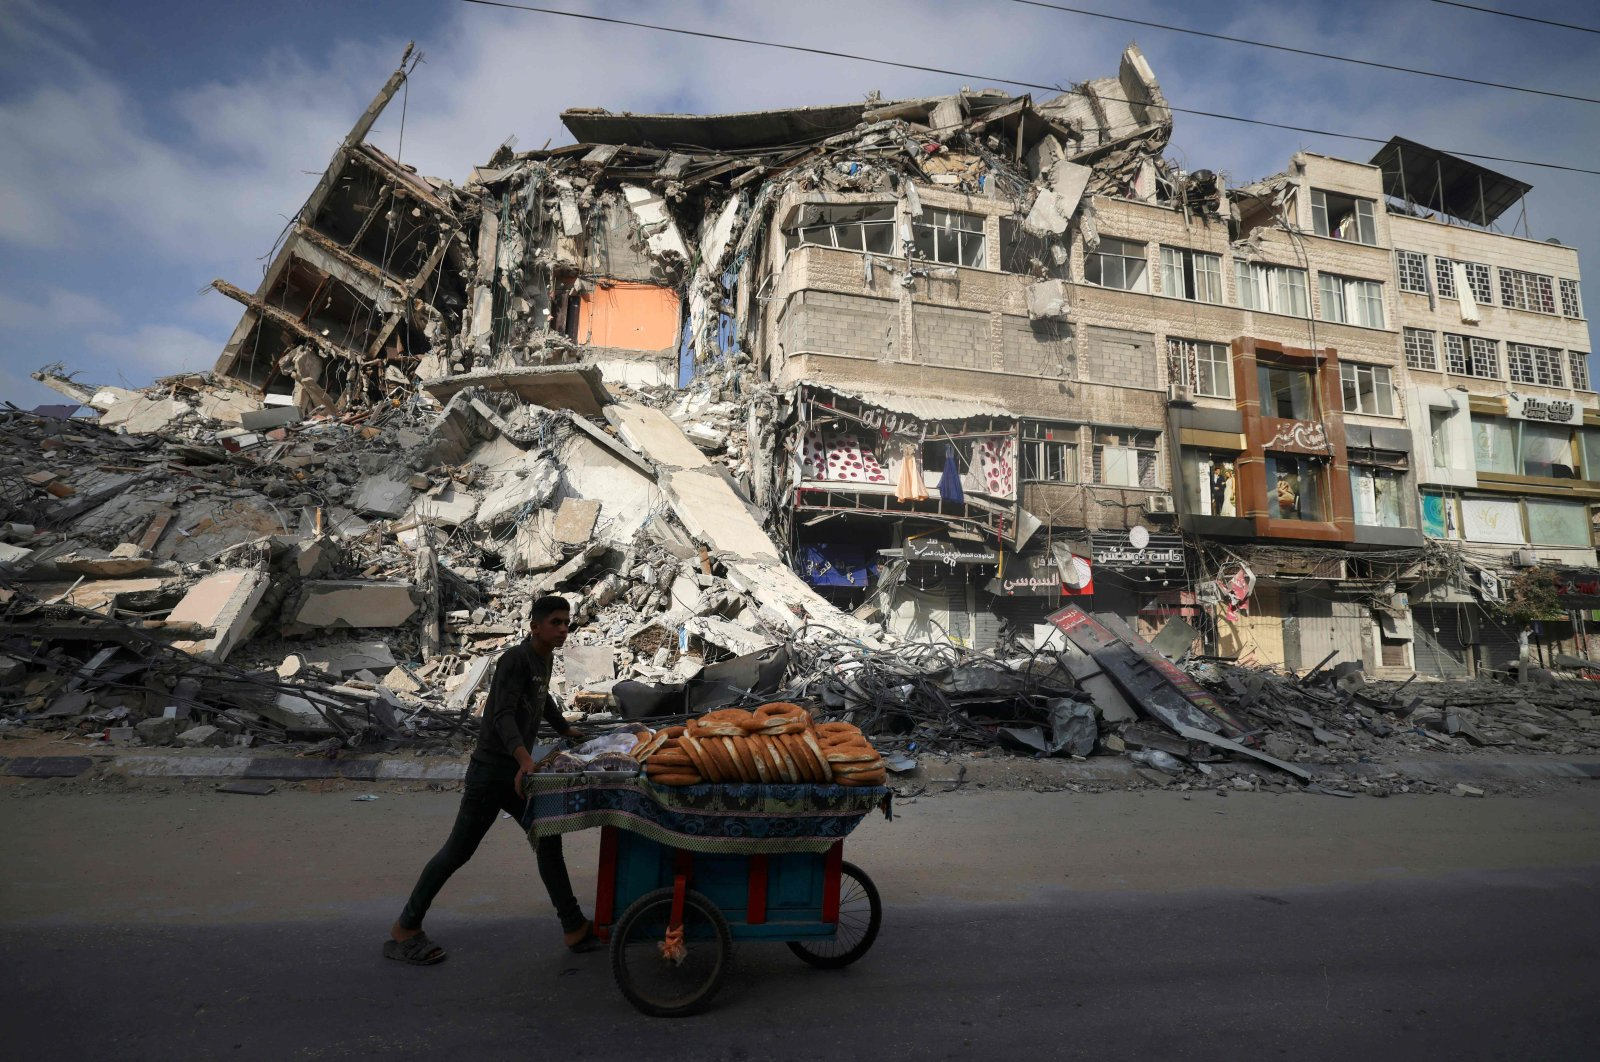 A Palestinian man walks past a building destroyed by an Israeli airstrike in Gaza Strip, Palestine, May 20, 2021. (AFP Photo)